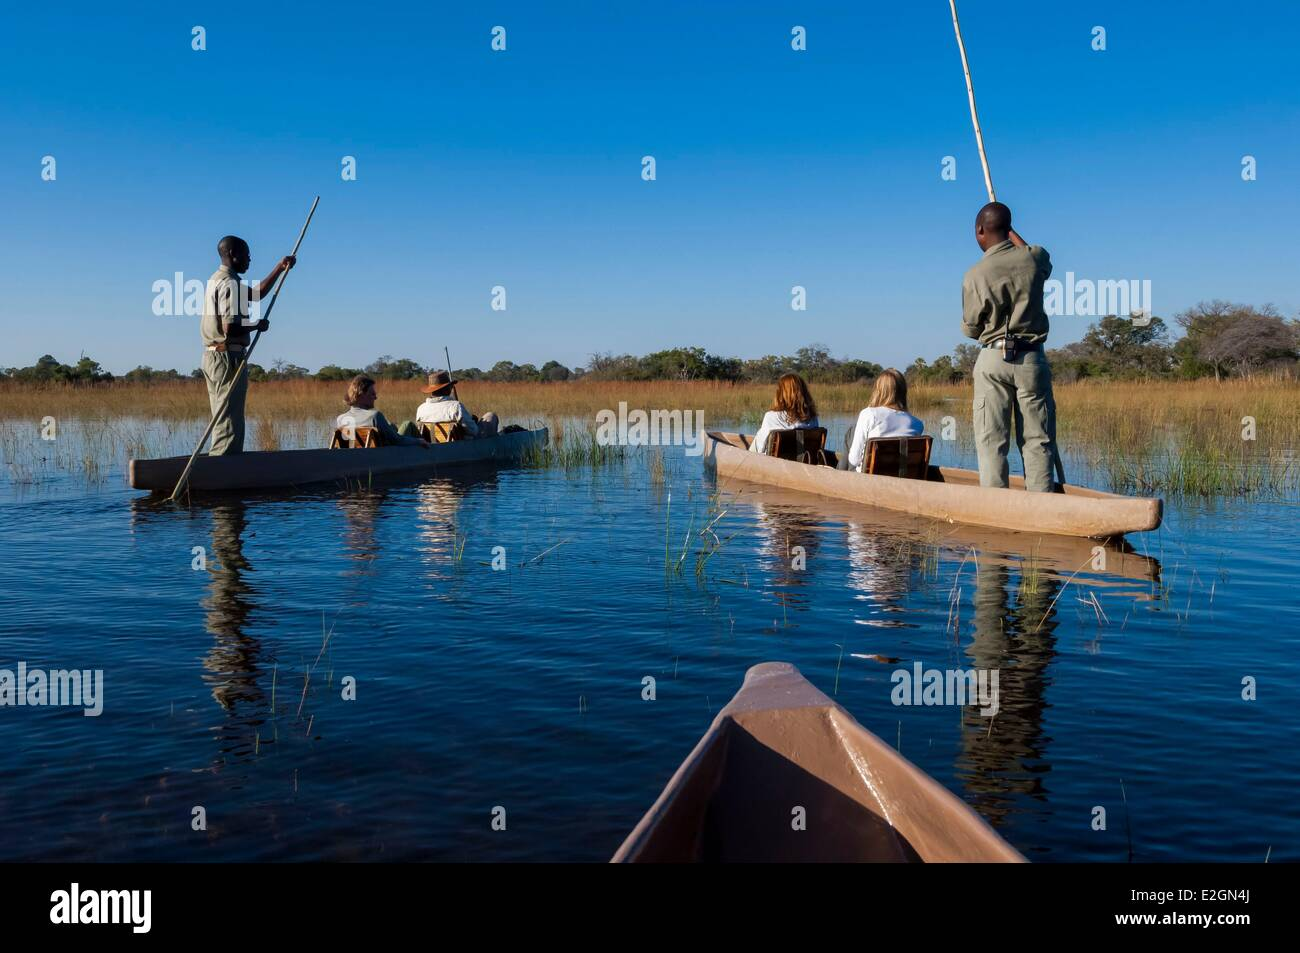 Botswana North West District Okavango Delta Abu Lodge safari - Stock Image